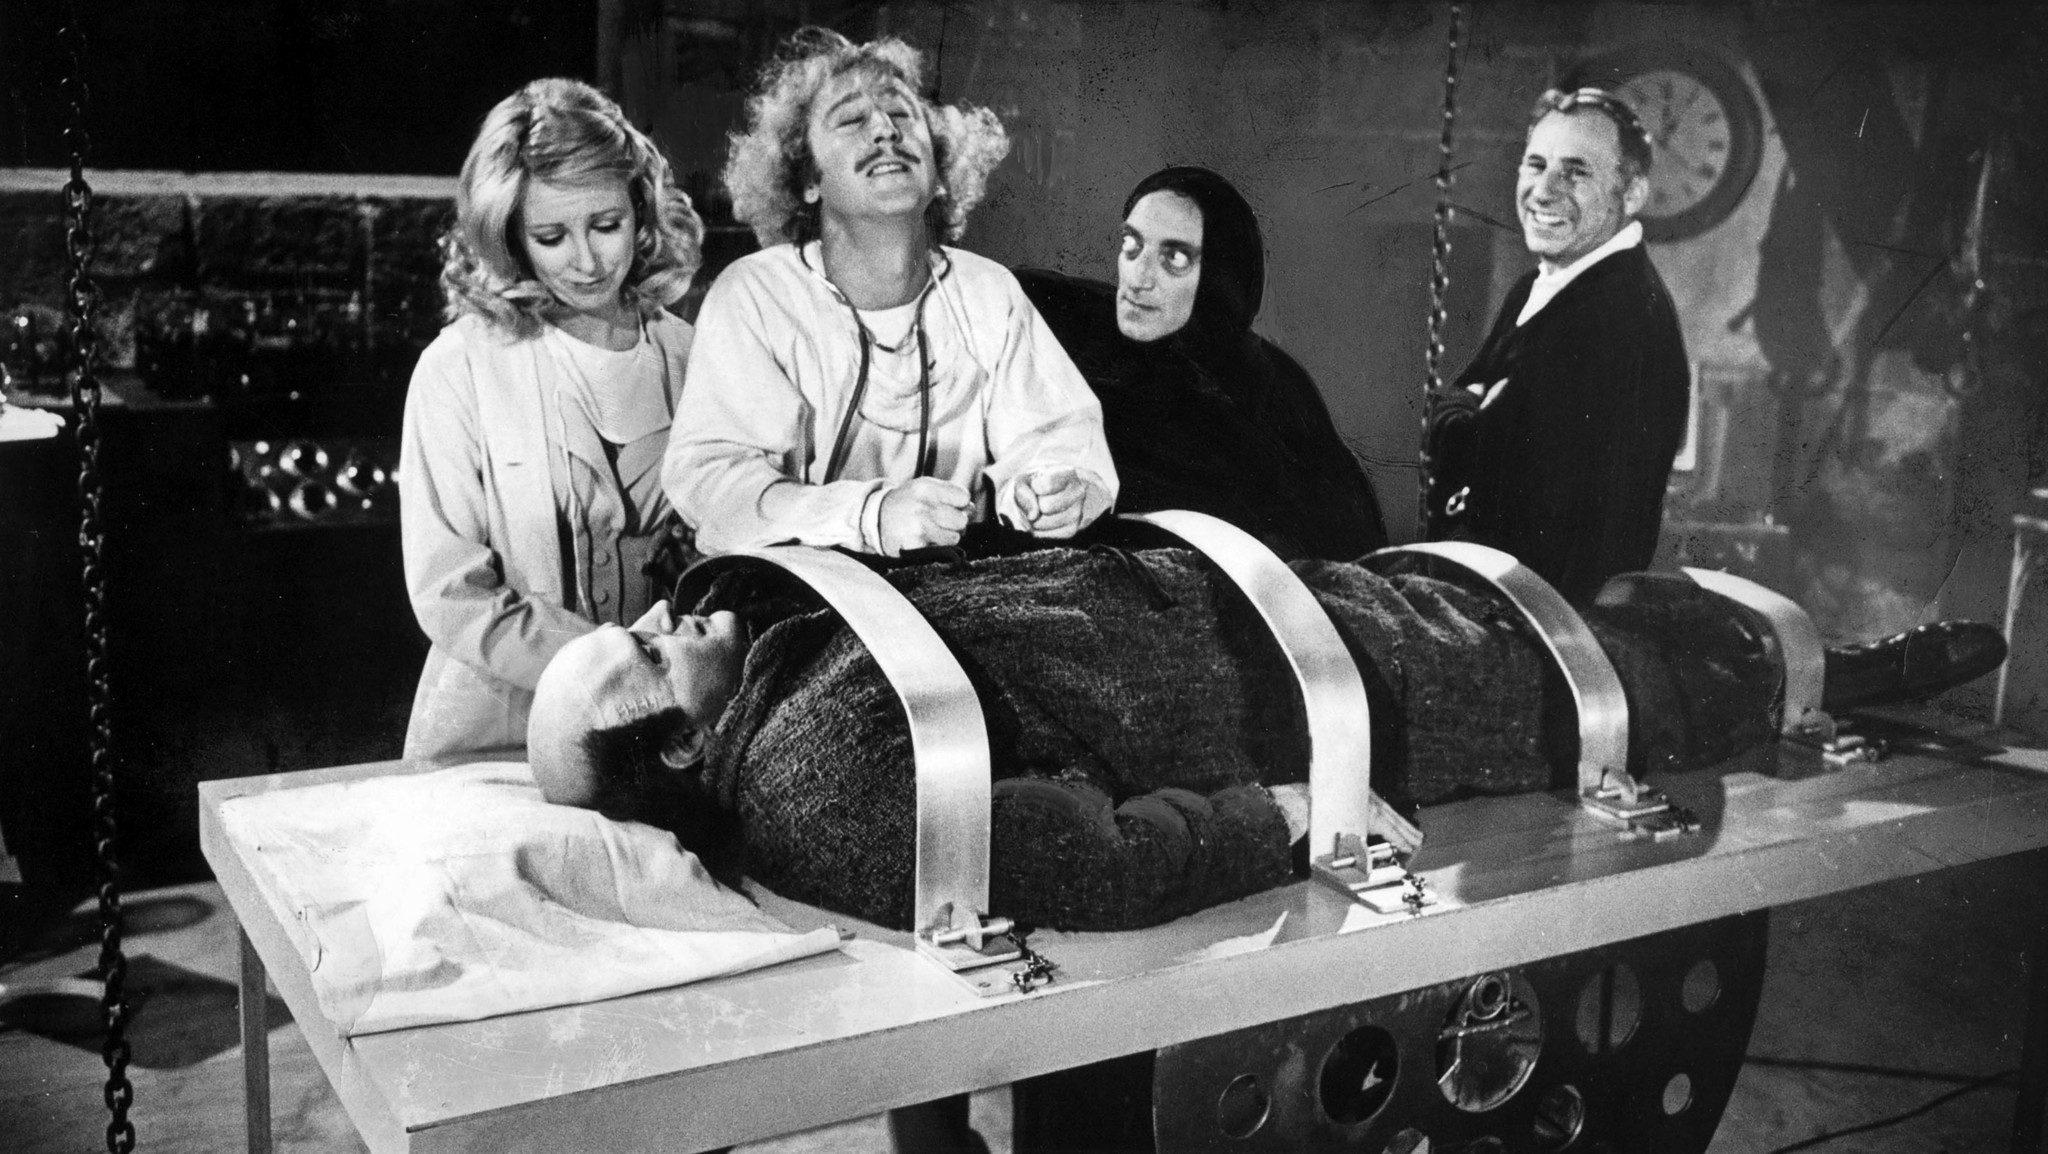 March 27, 1974: Image from the set of movie Young Frankenstein. From left: Teri Garr, Gene Wilder, M